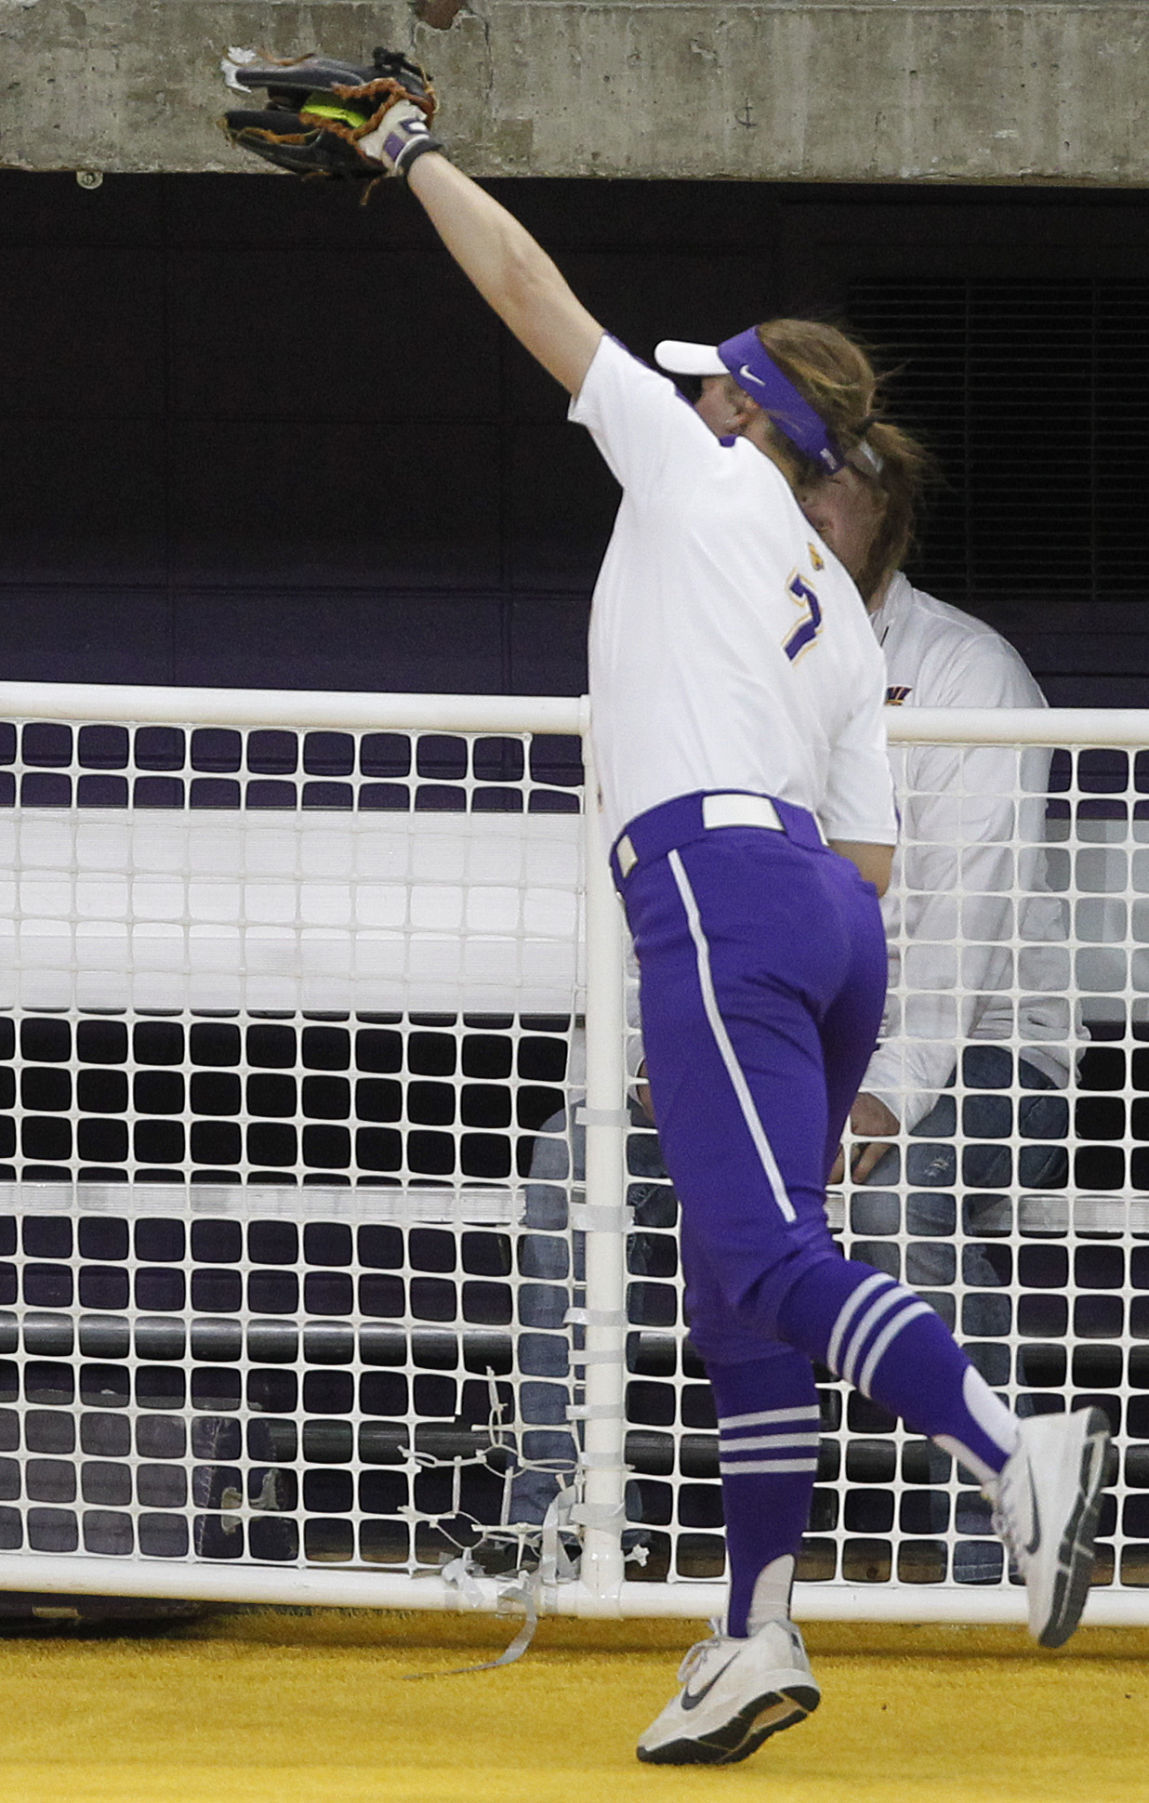 041418mp-UNI-softball-2nd-game-3